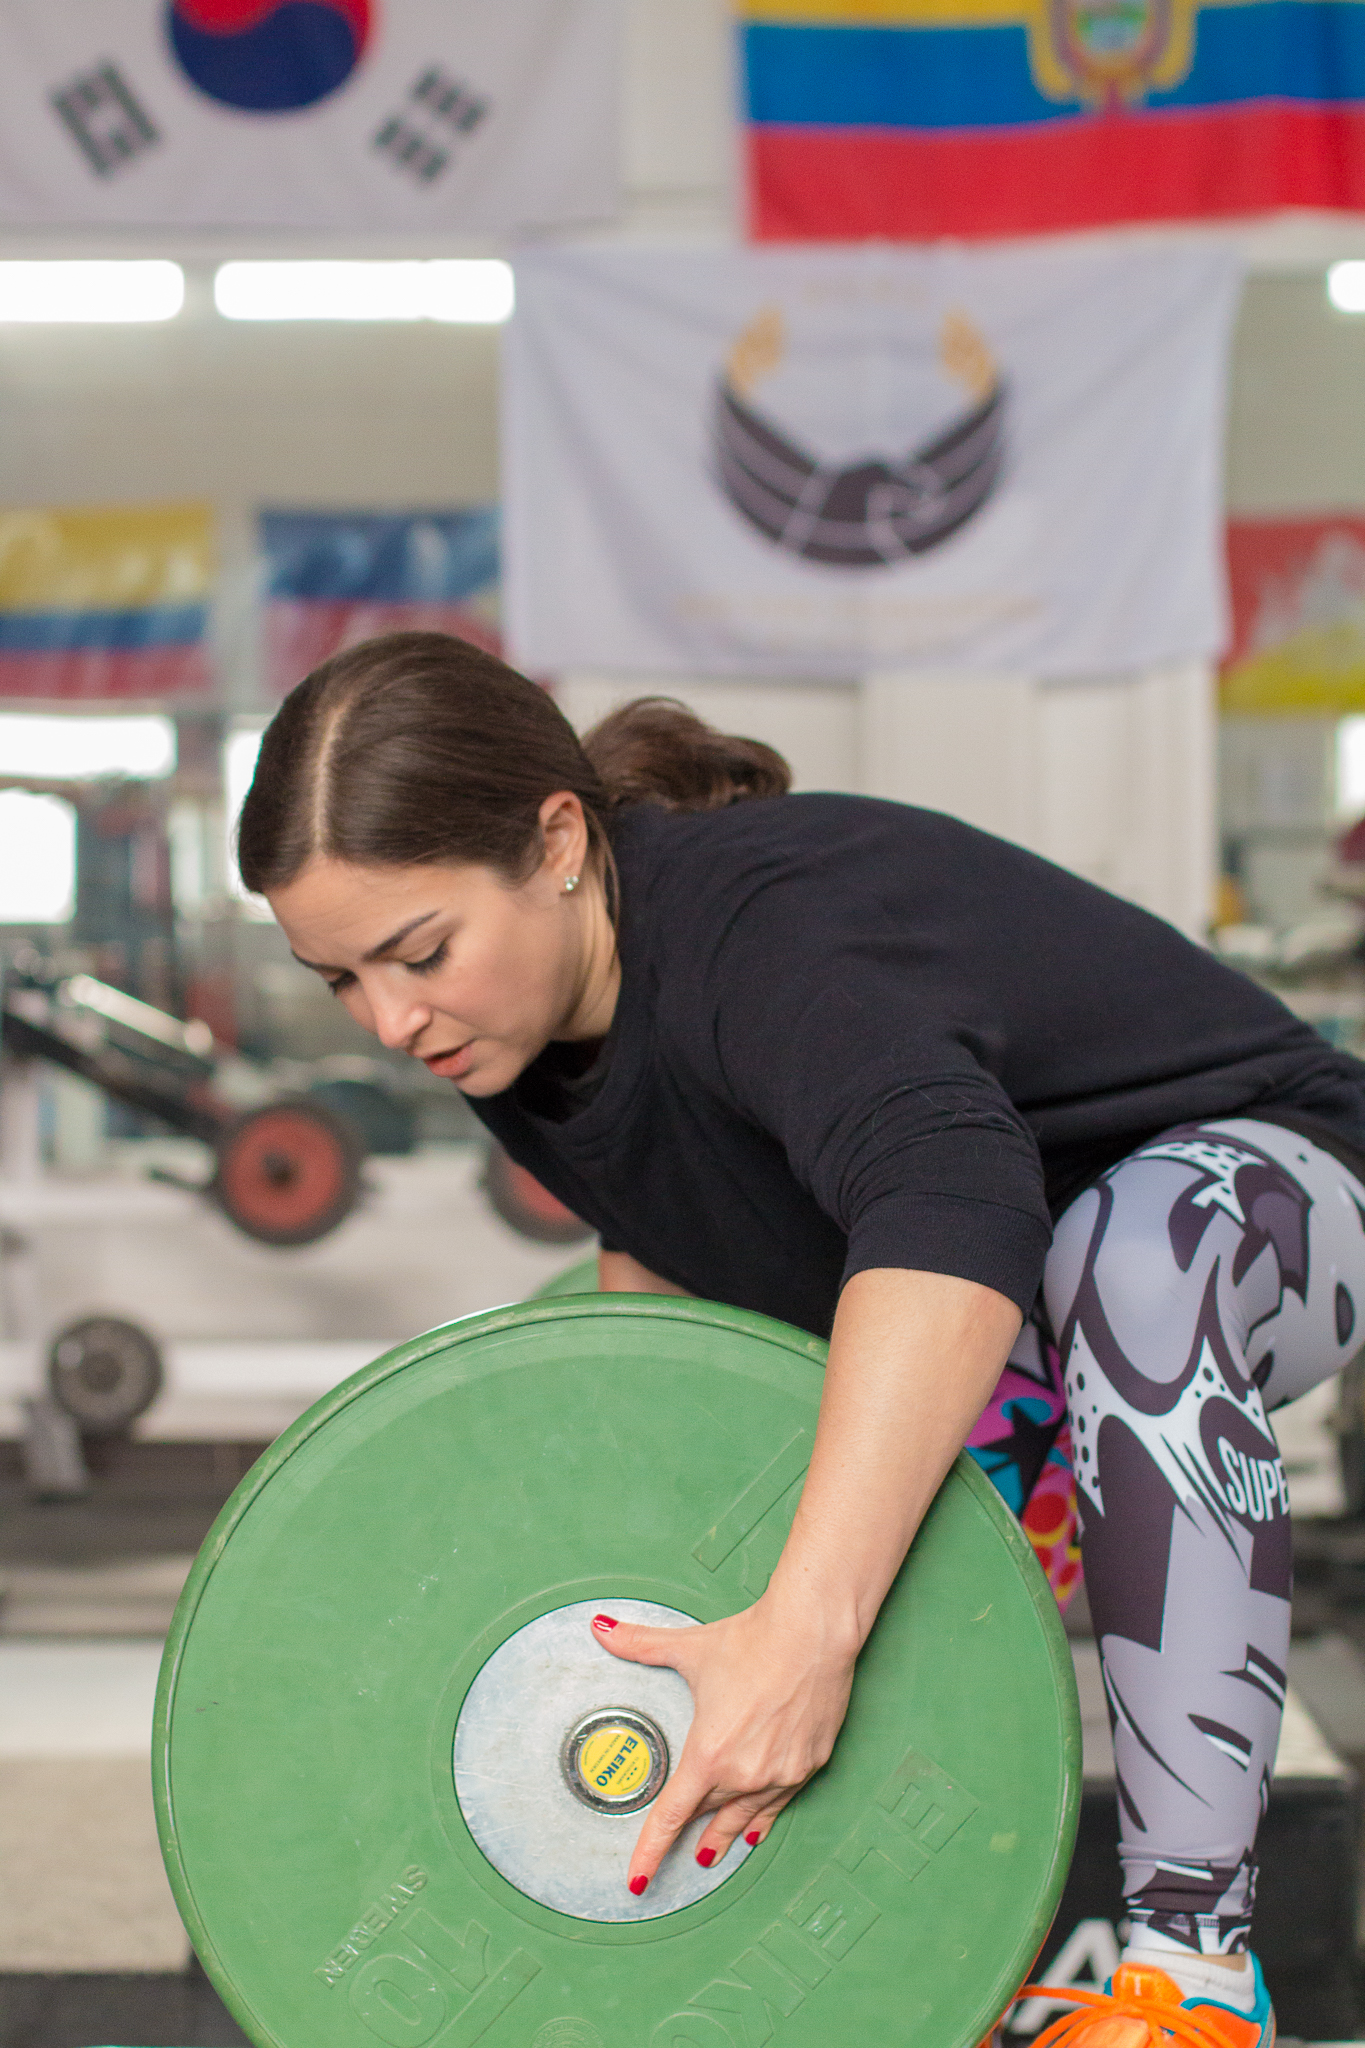 lauren-weightlifters-olympic-weightlifting-featured-everyday-lifters (4 of 31).jpg